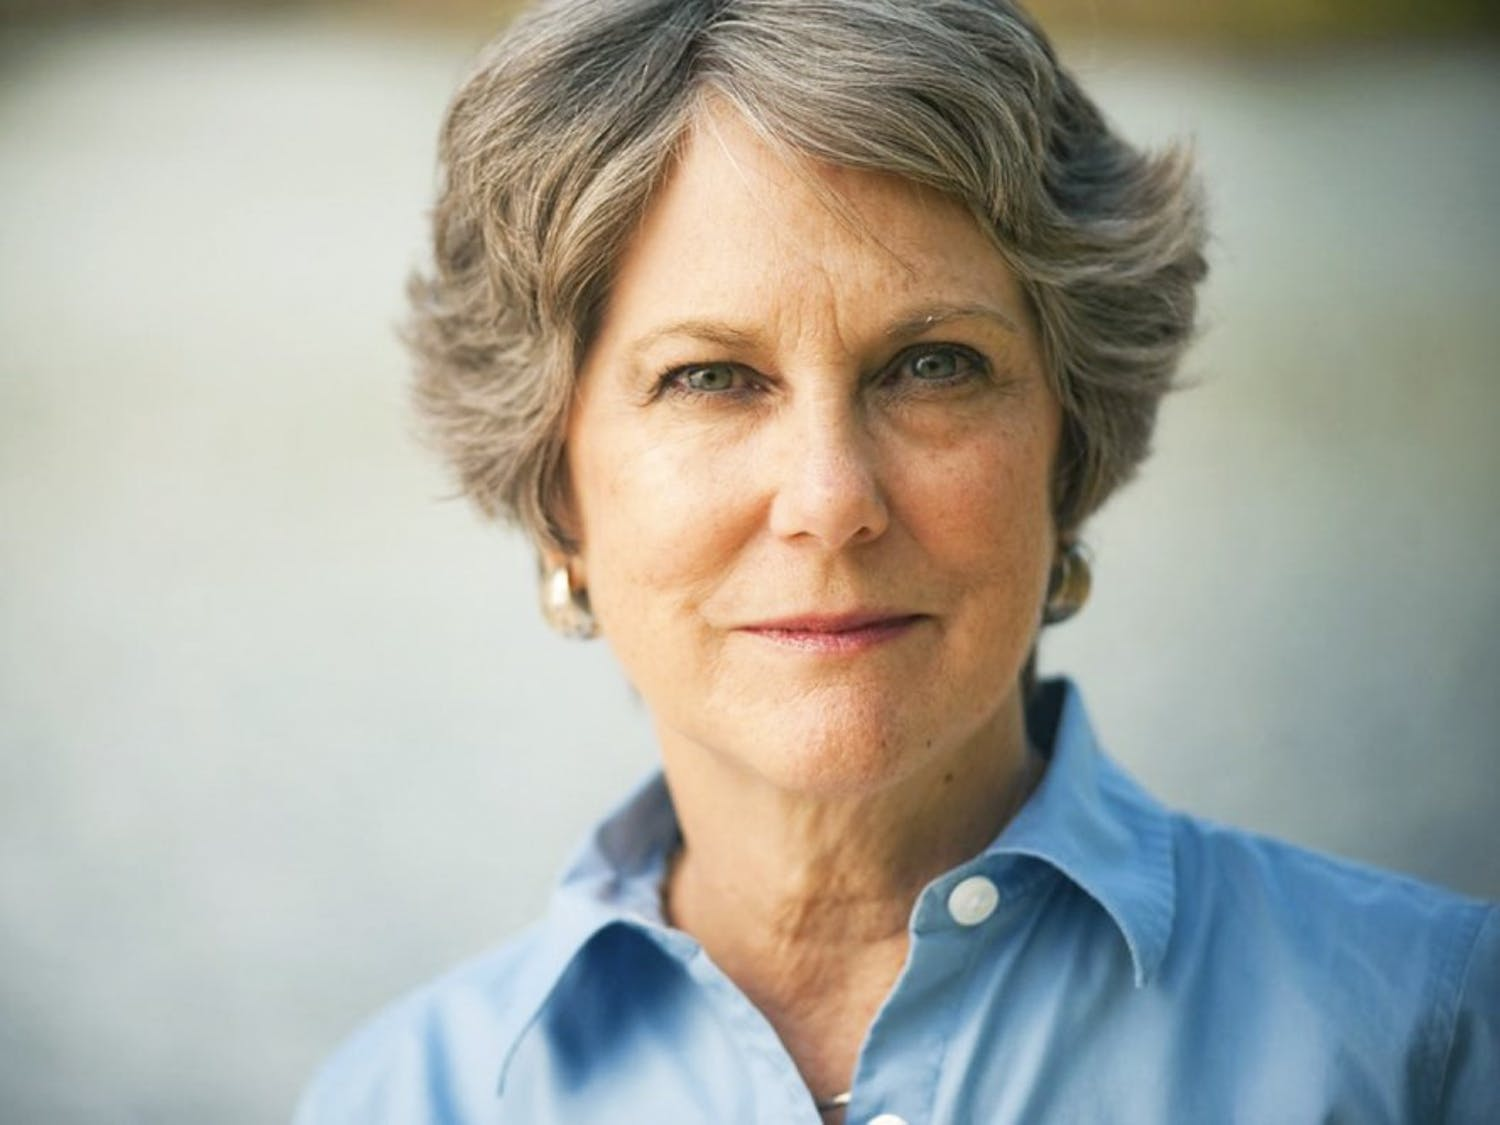 Patsy Keever is the new chairwoman of the North Carolina Democractic Party. Keever plans on addressing financial challenges, hiring new staff and installing a new executive director. Courtesy of the NC Democratic Party.